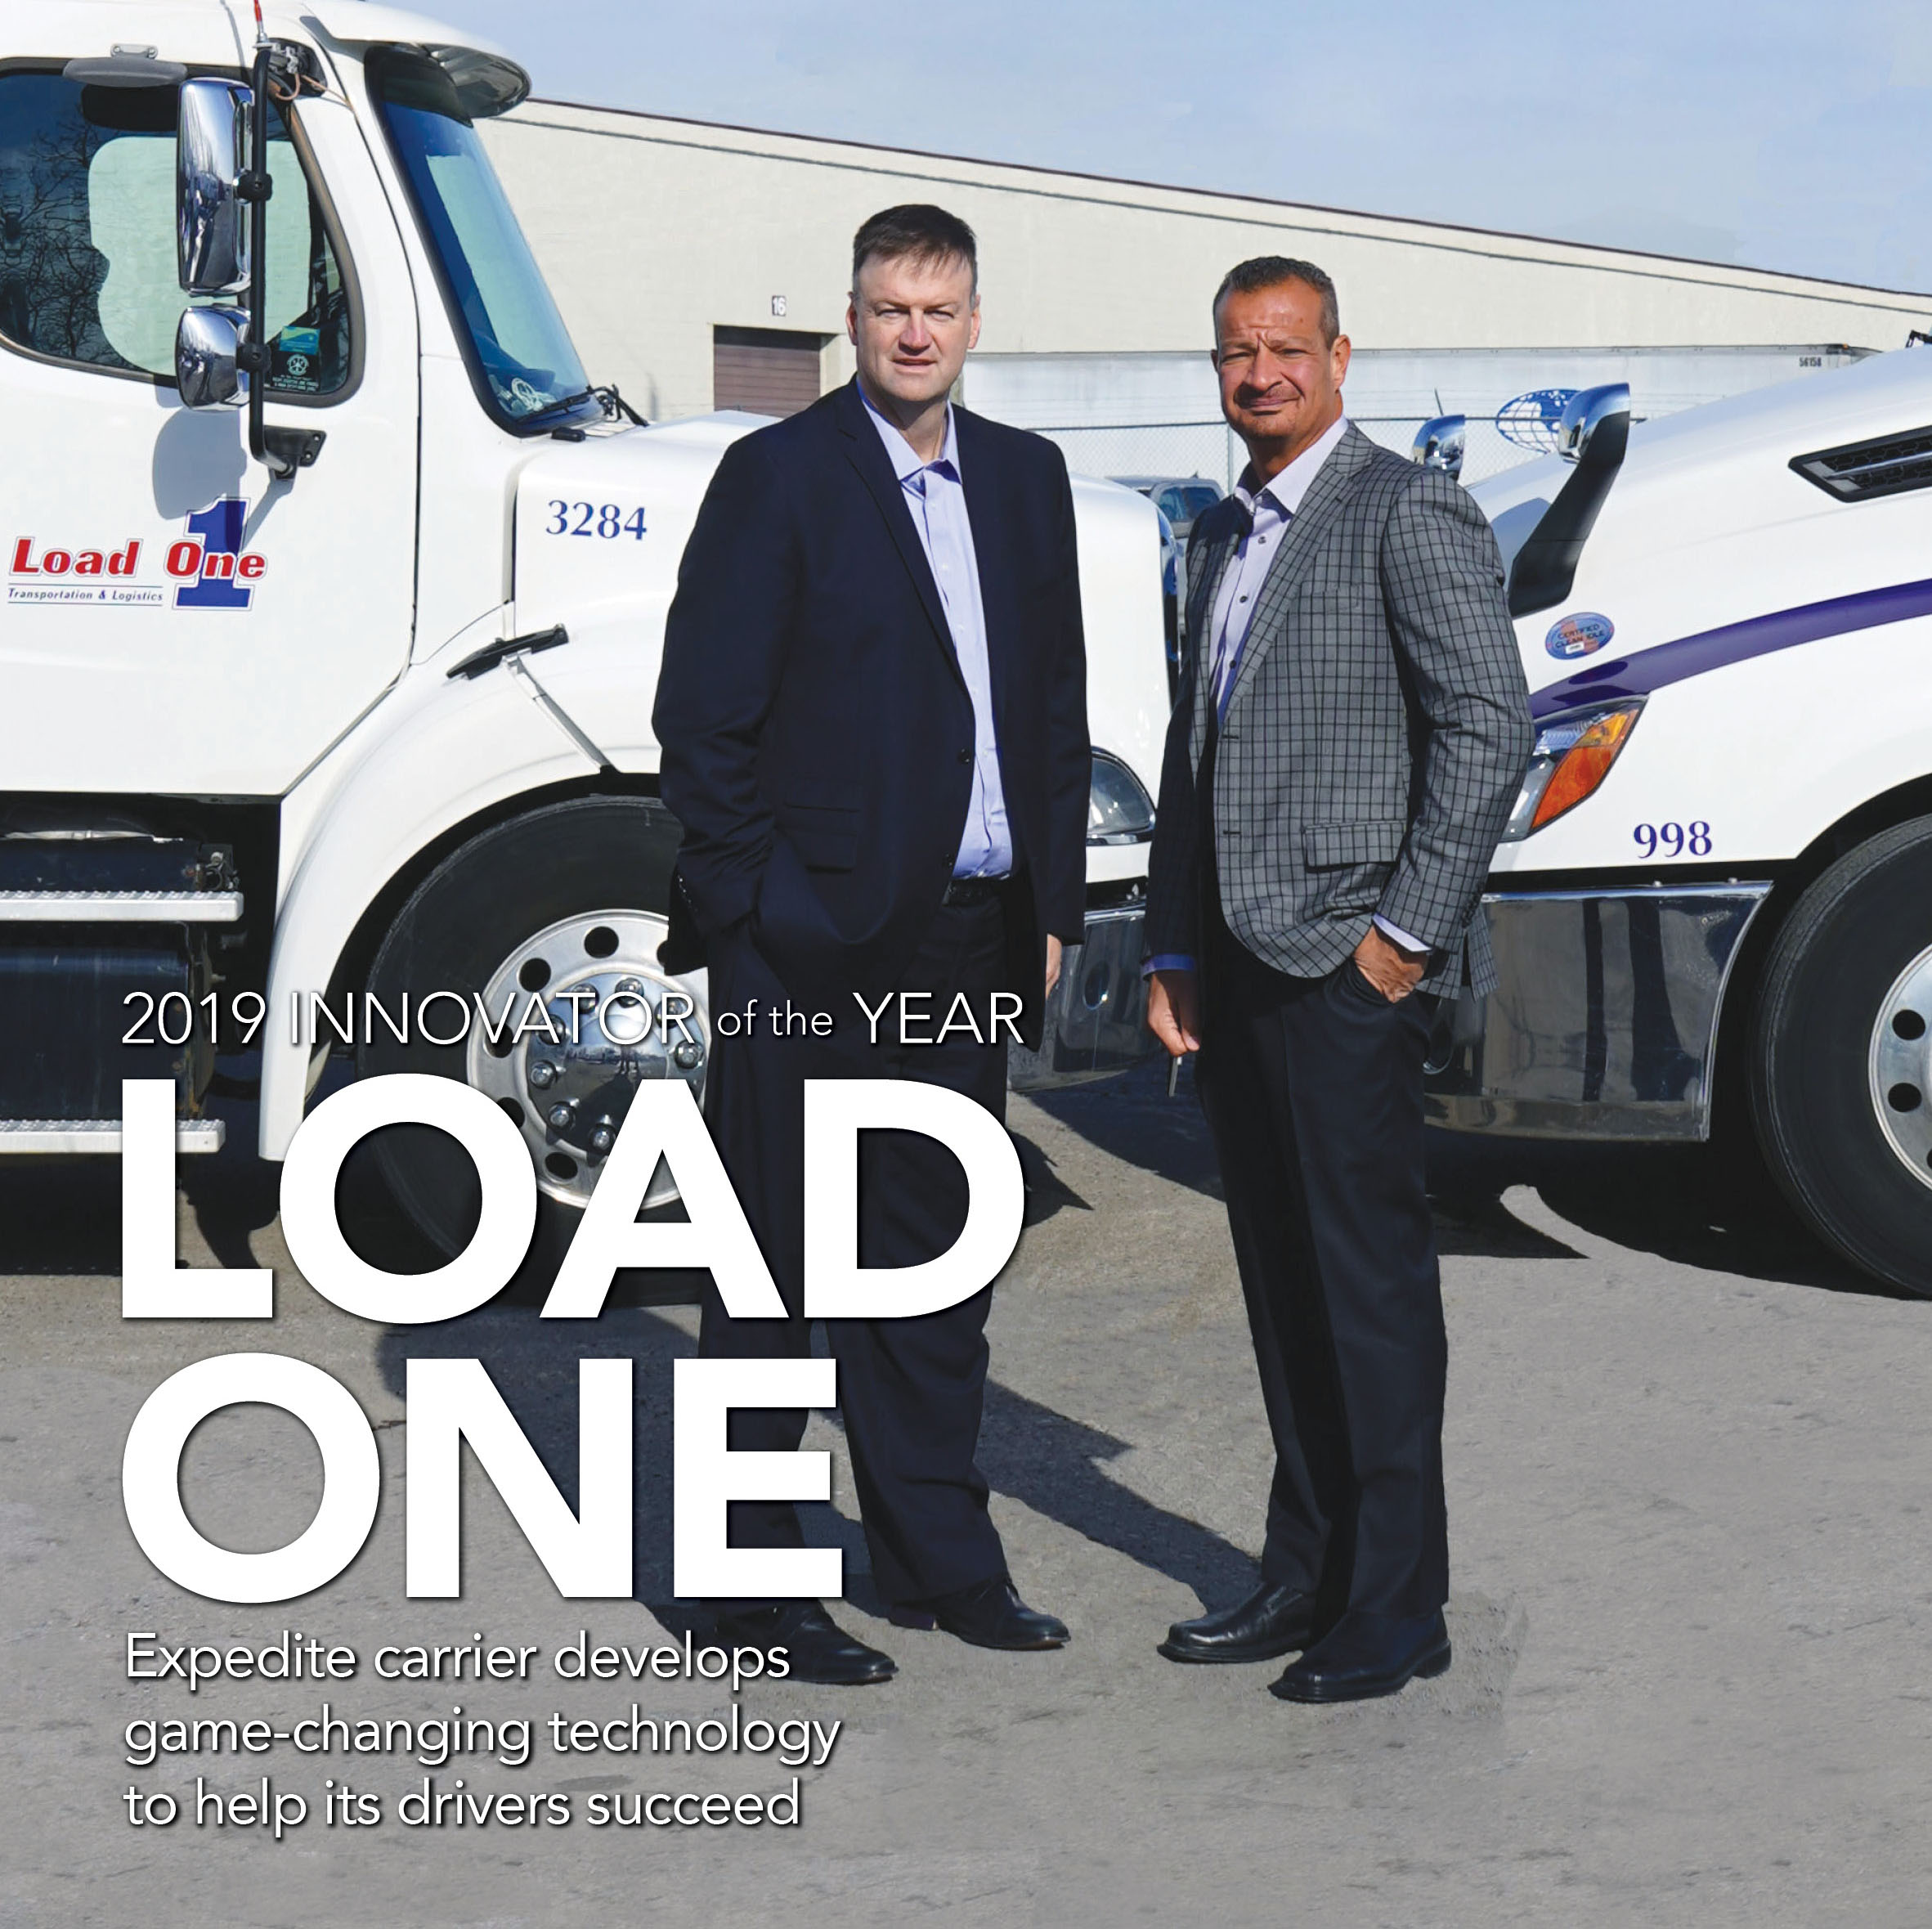 Technology at Load One Transport optimizes the impossible